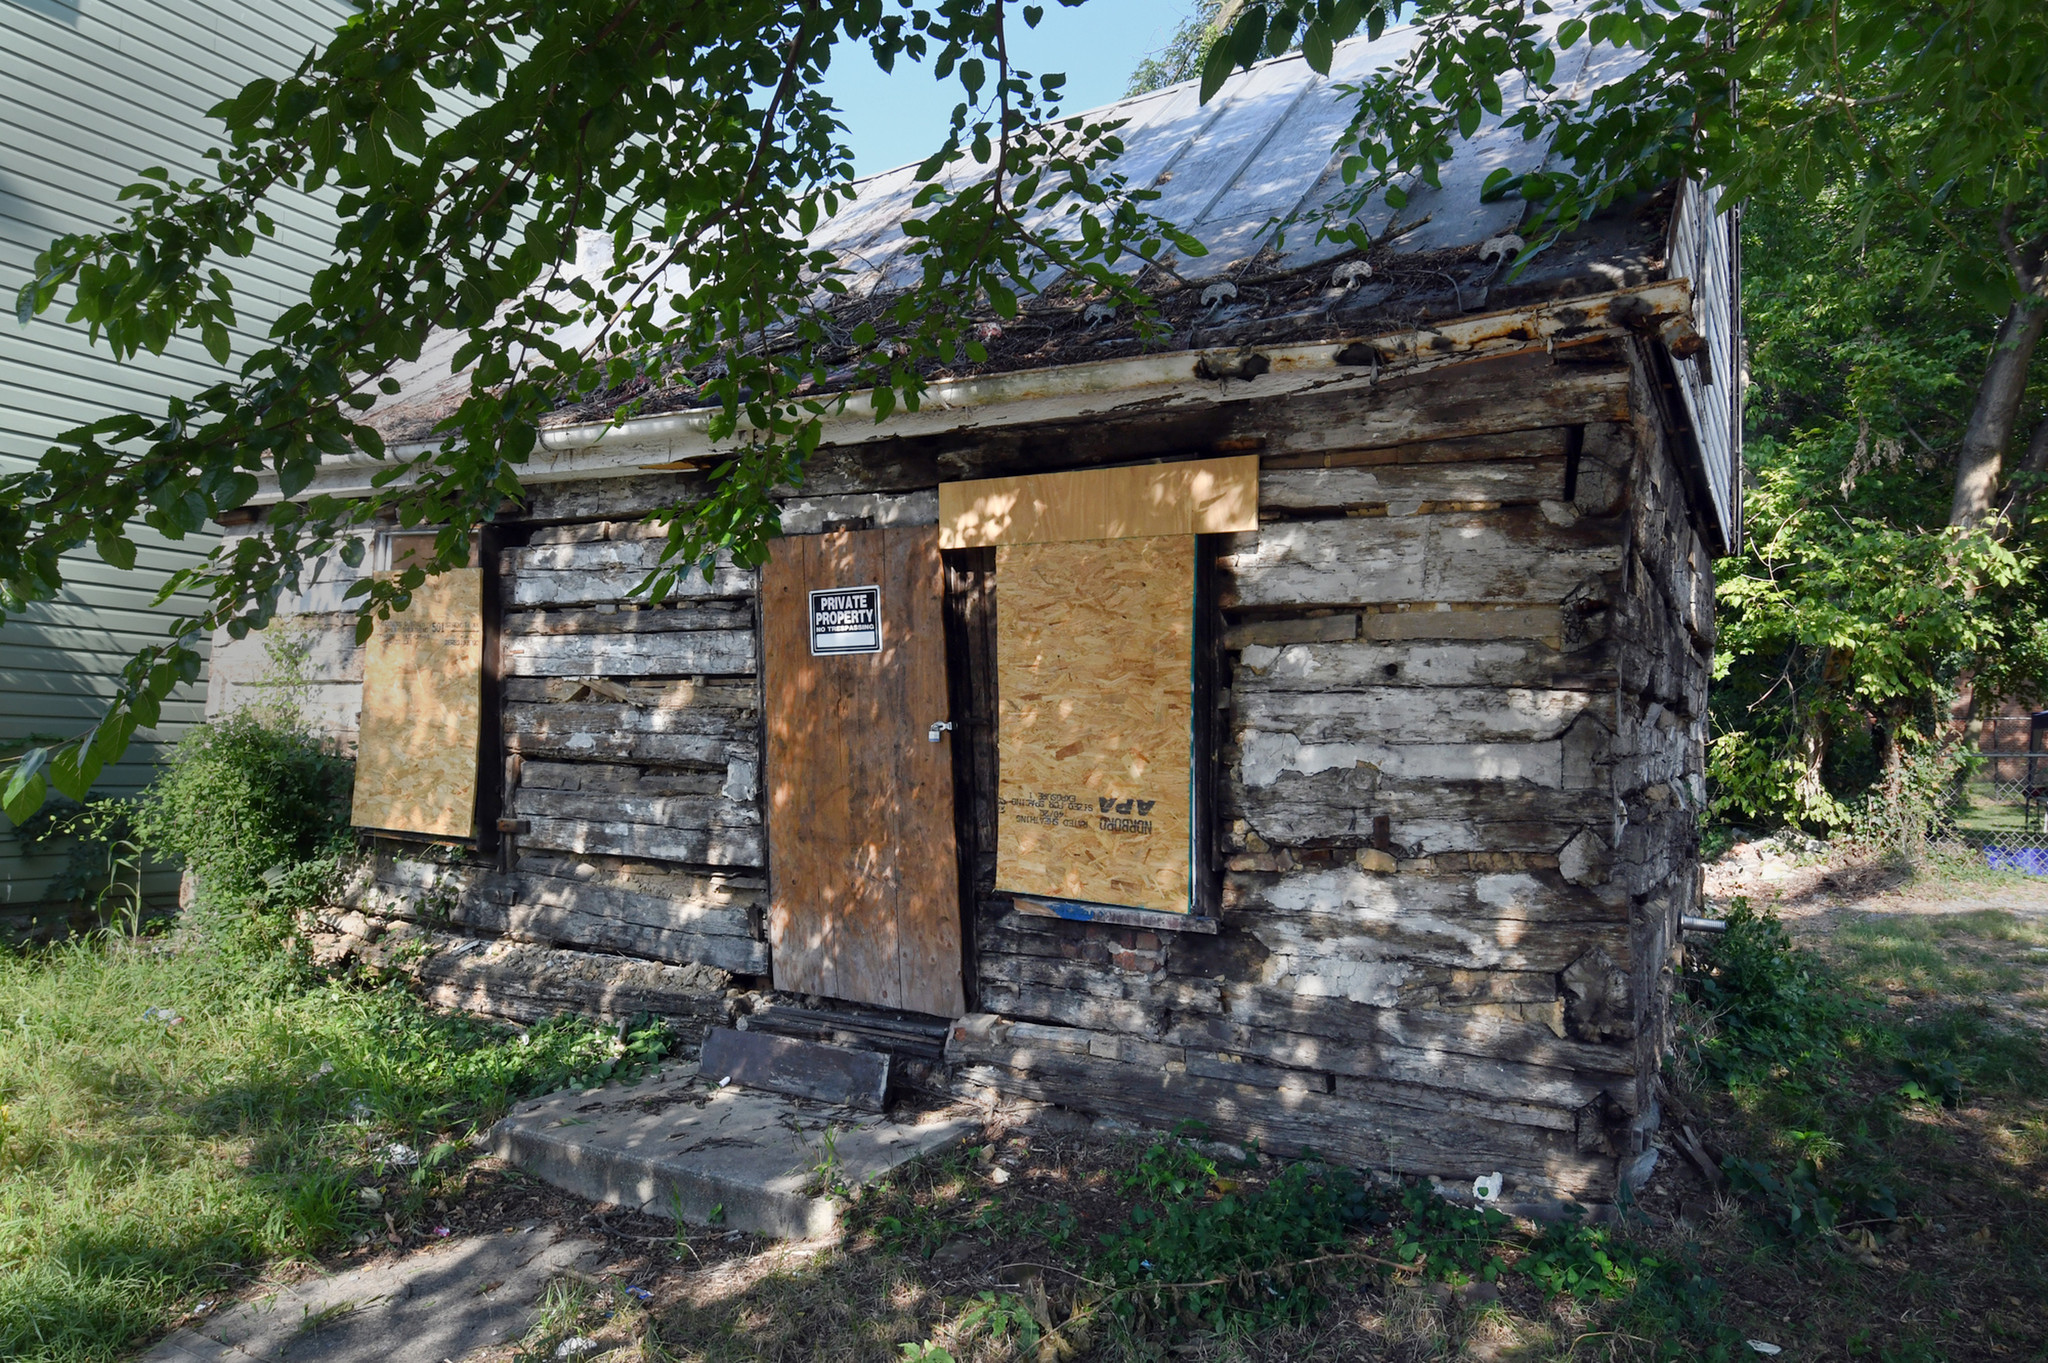 A Little Underdog A Rediscovered Log Cabin With A Mysterious Past In Hagerstown Showcases A Forgotten Black Community Baltimore Sun